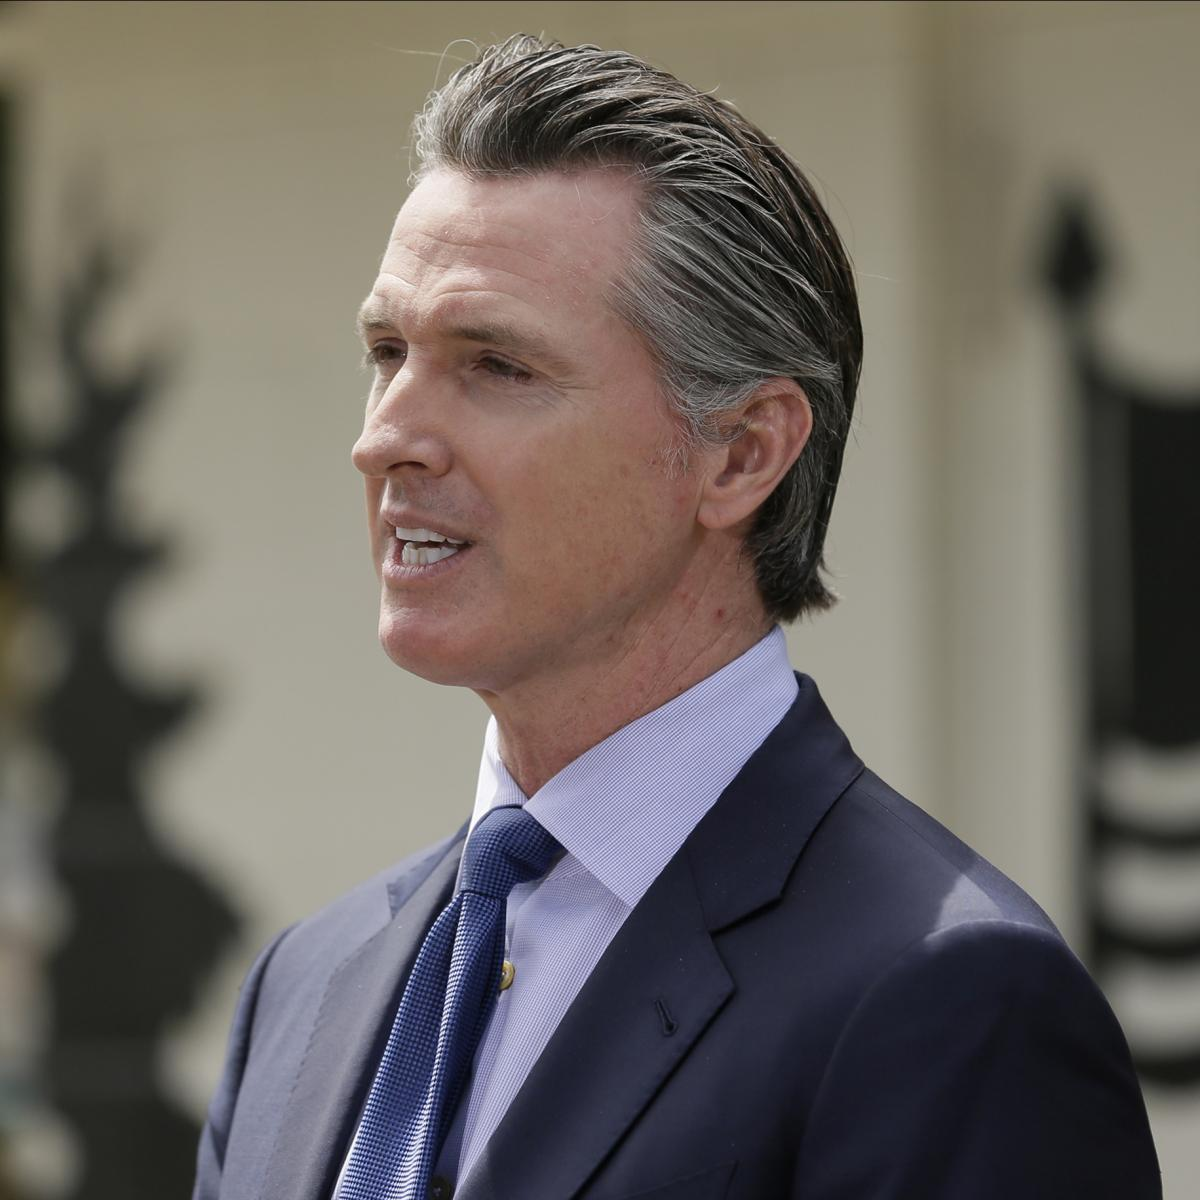 California Gov. Gavin Newsom says places of worship can resume in-person services pending county approval. Attendance will be limited to fewer than 100 or 25% of the building's capacity, whichever is lower.